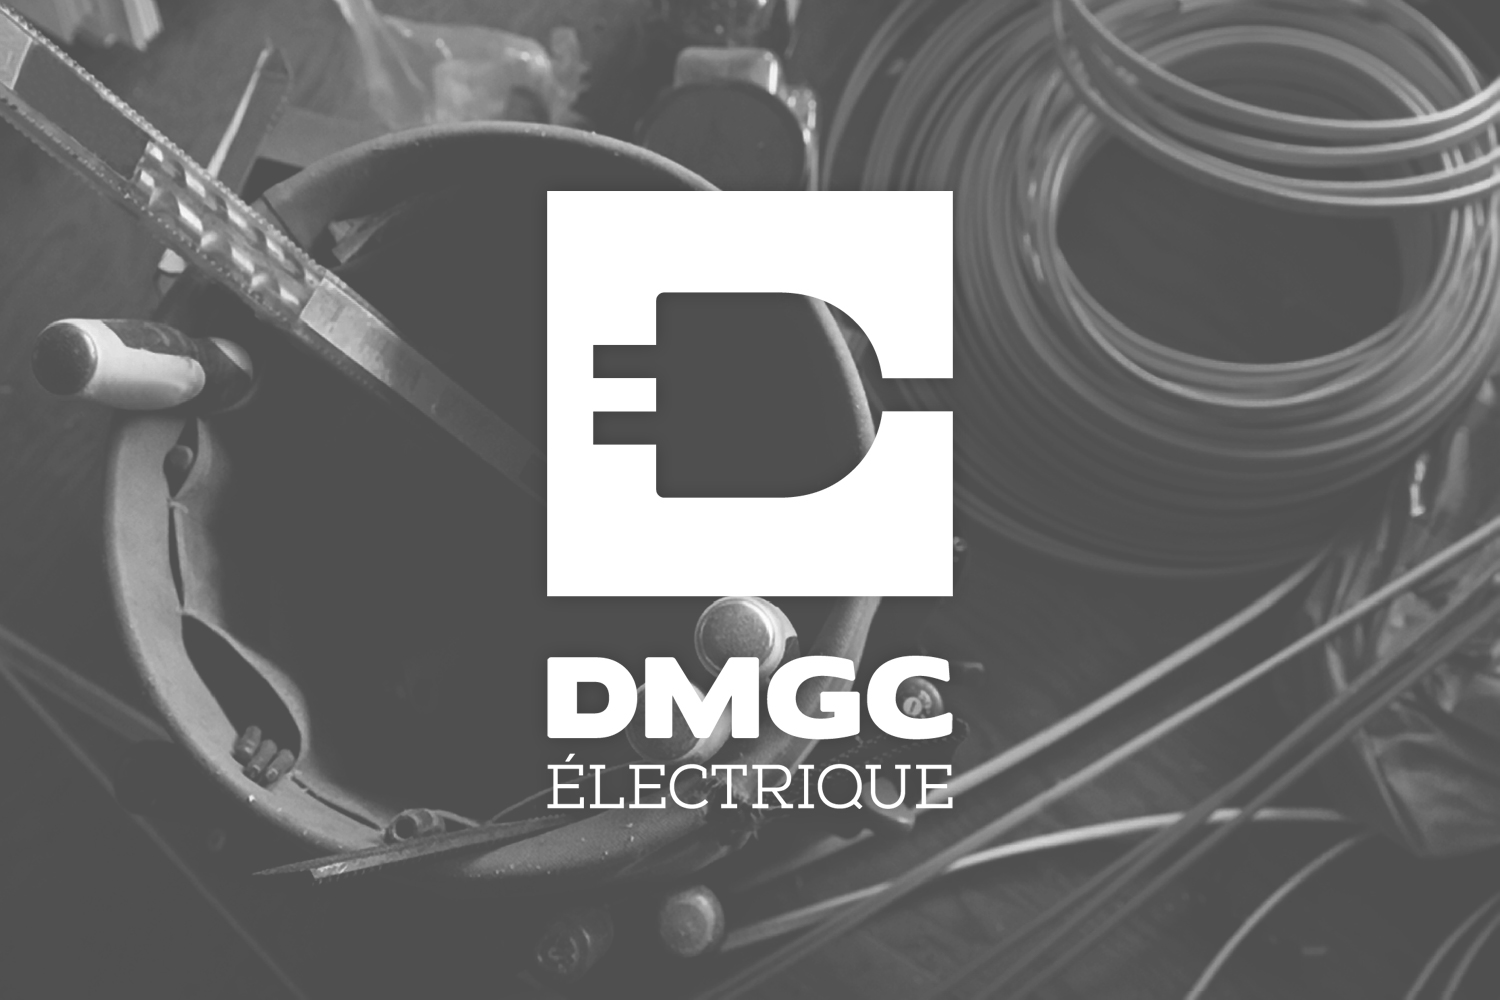 dmgc electrique's logo over image of electrician's tools and wires, black and white image, simple, logo in white, logo design, branding